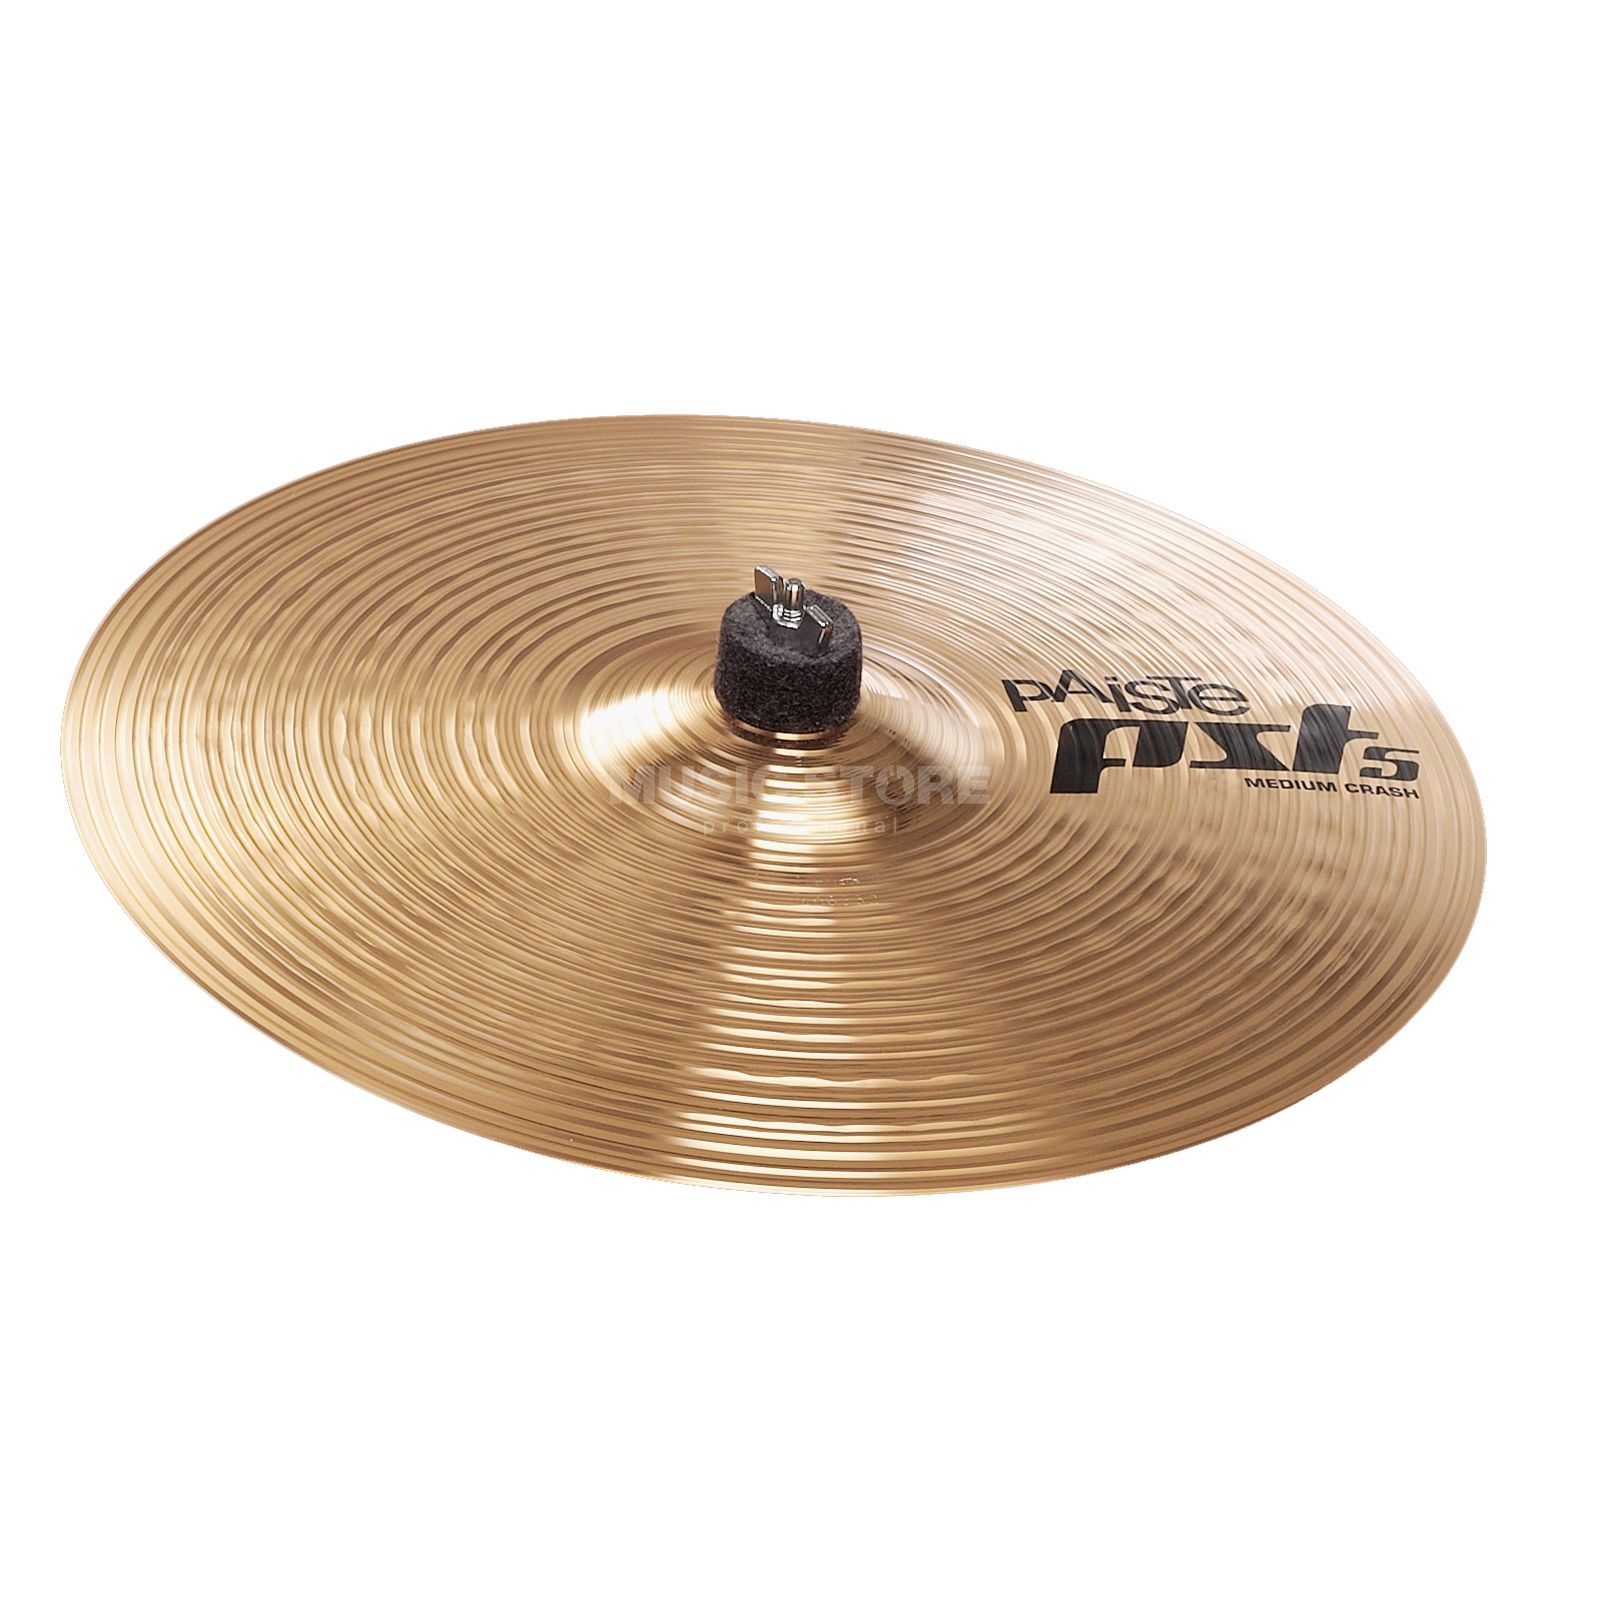 "Paiste PST5 Medium Crash 18"", Version 2014 Produktbild"